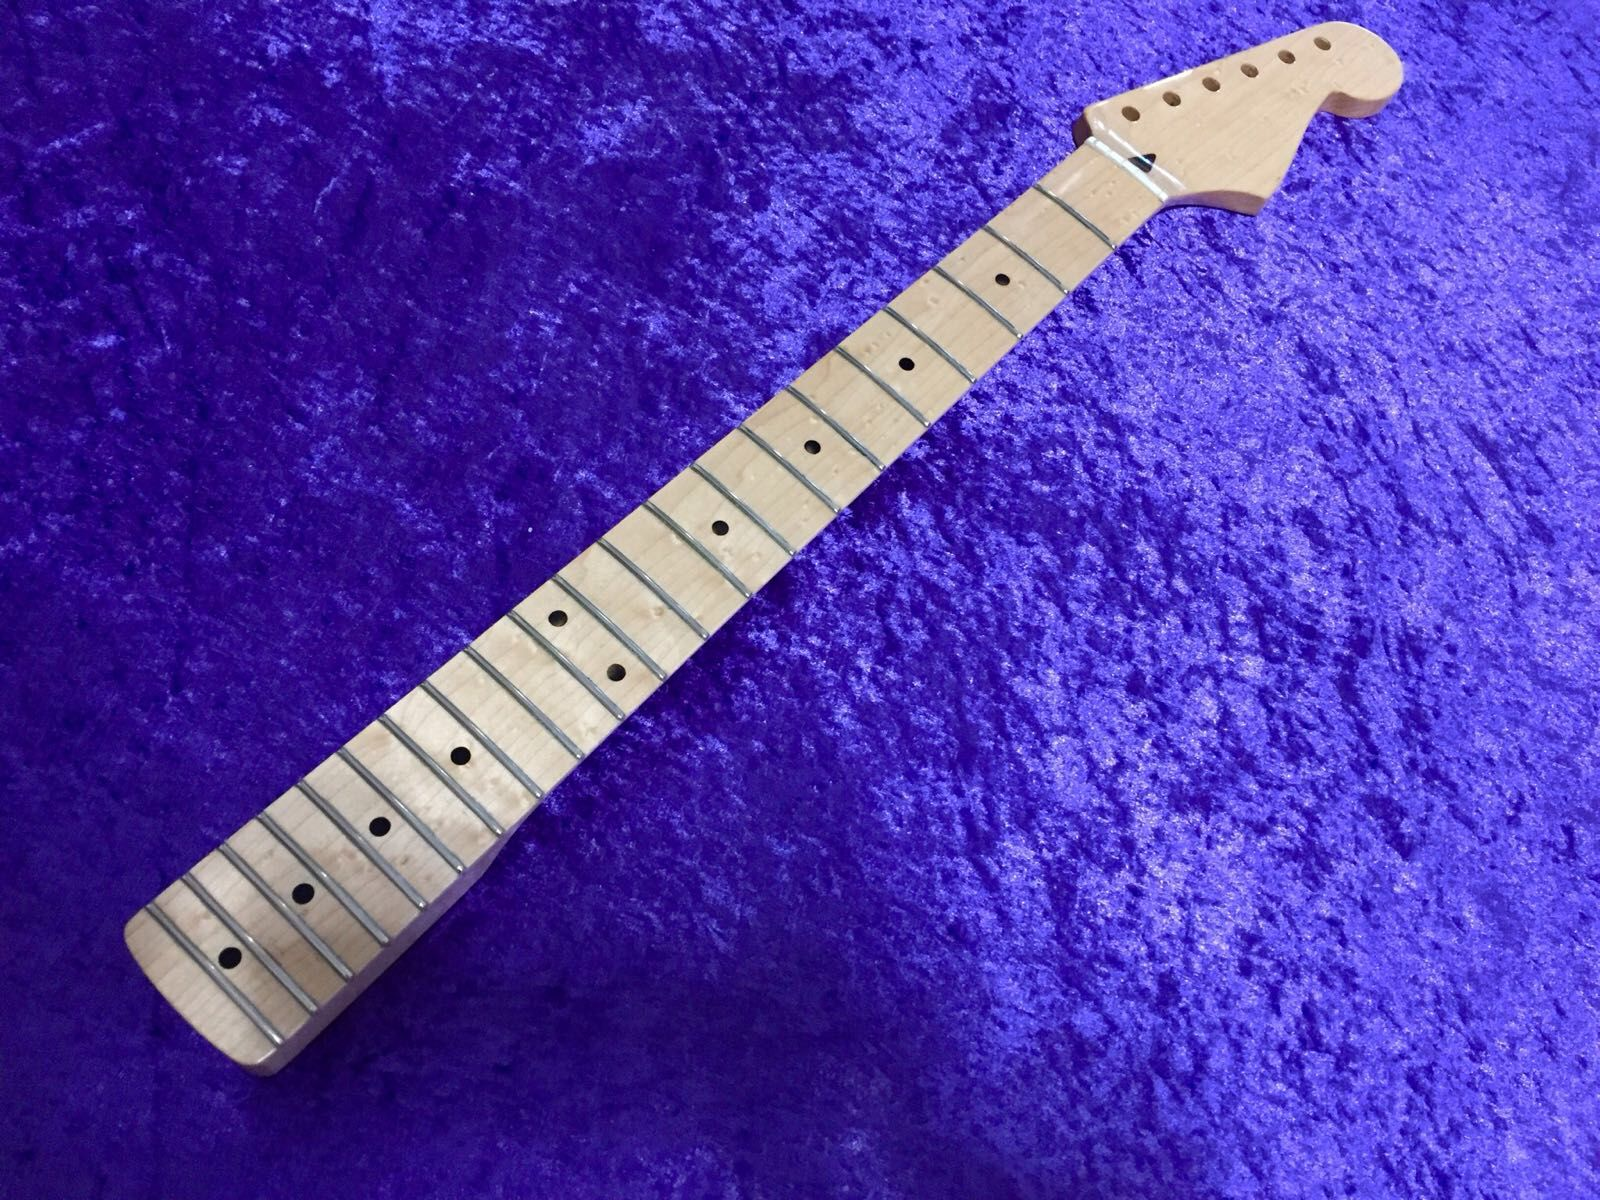 fender all parts wood apw guitars neck stratocaster